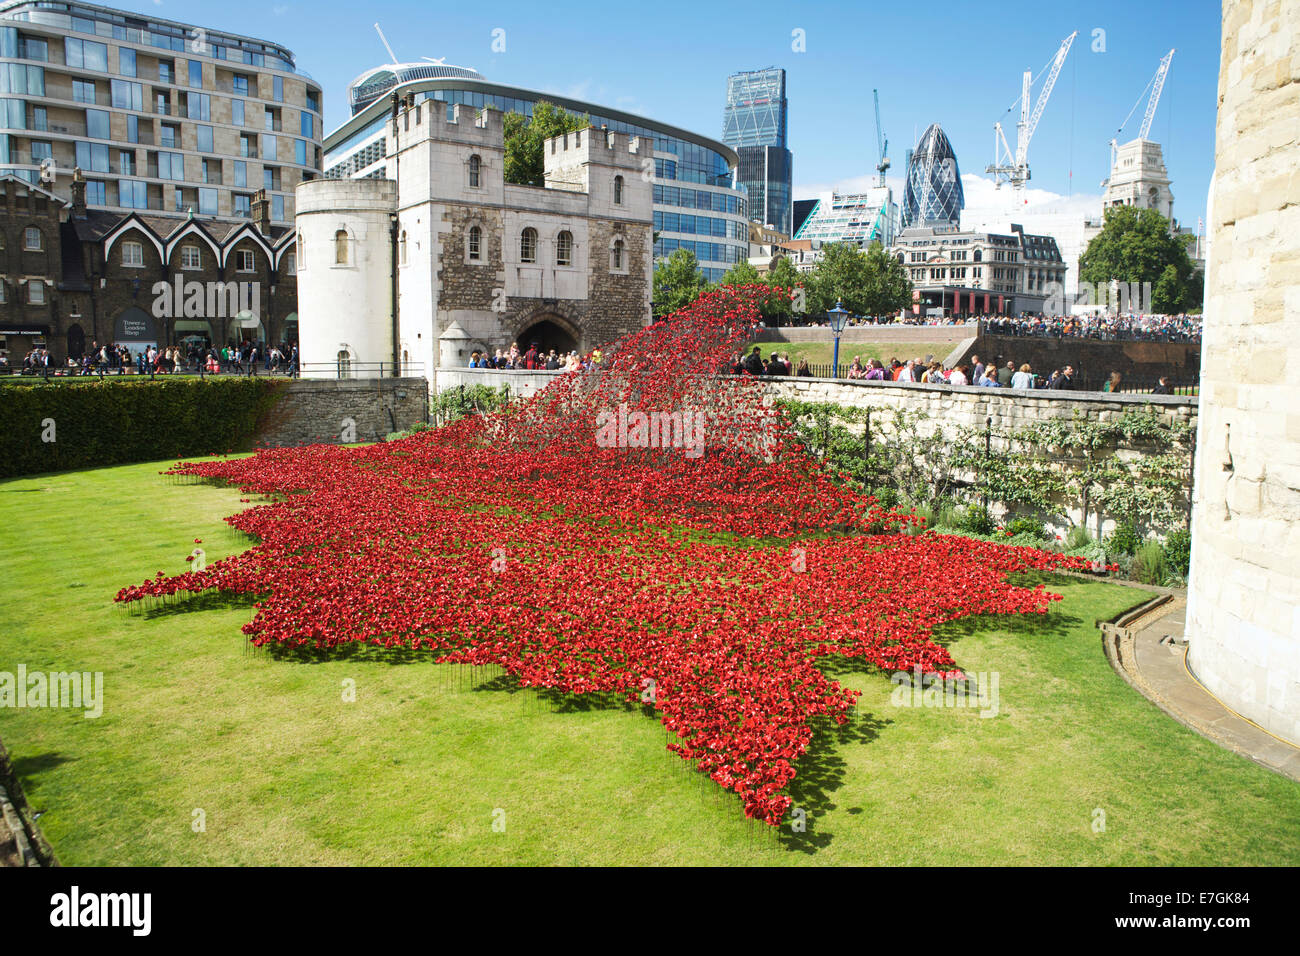 Tower of London Poppies, moat: with a sea of ceramic poppies in remembrance of WW1, London, England, UK. Art installation - Stock Image